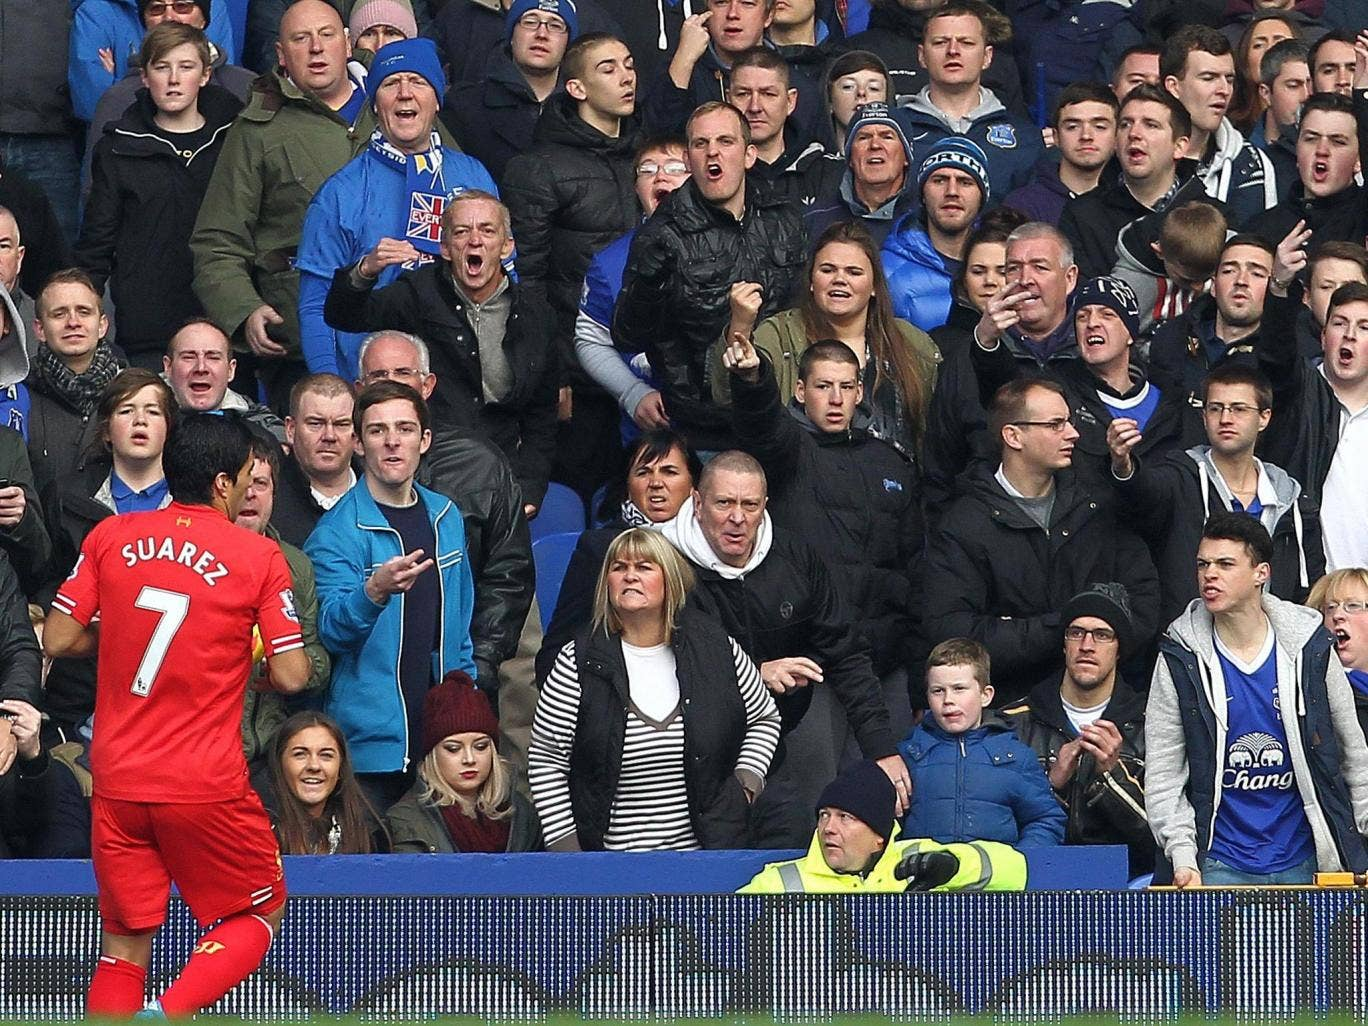 Liverpool's Luis Suarez is given a warm reception by Everton supporters during a recent trip to Goodison Park